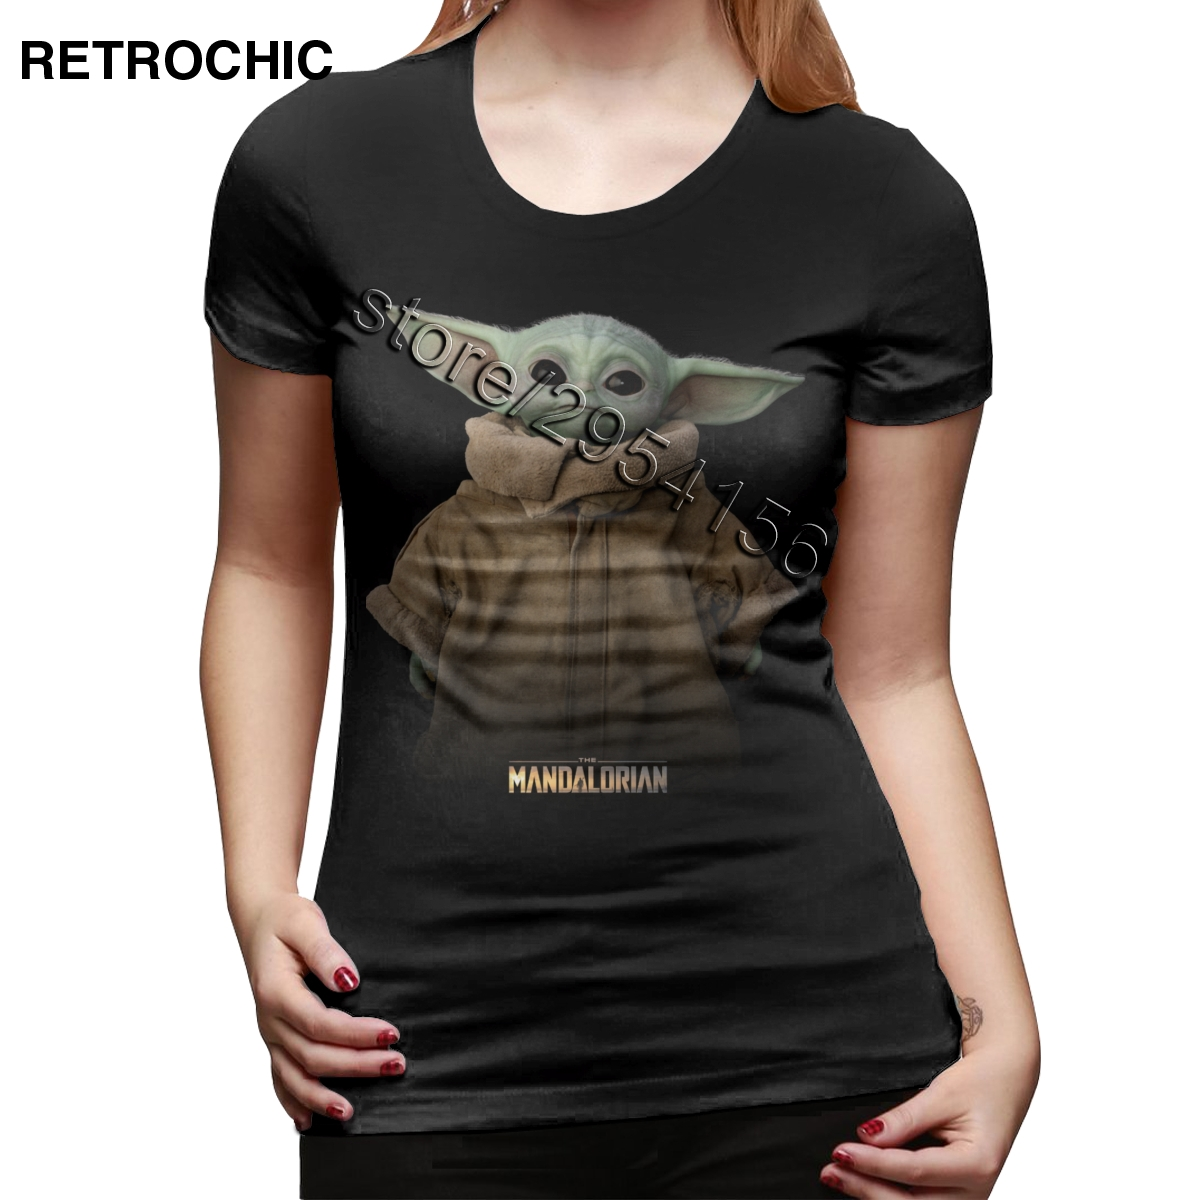 New Baby Child Yoda T Shirts Women 100% Cotton Star Wars Mandalorian Tshirt Female Short Sleeved O-neck Casual Tees Tops Clothes image